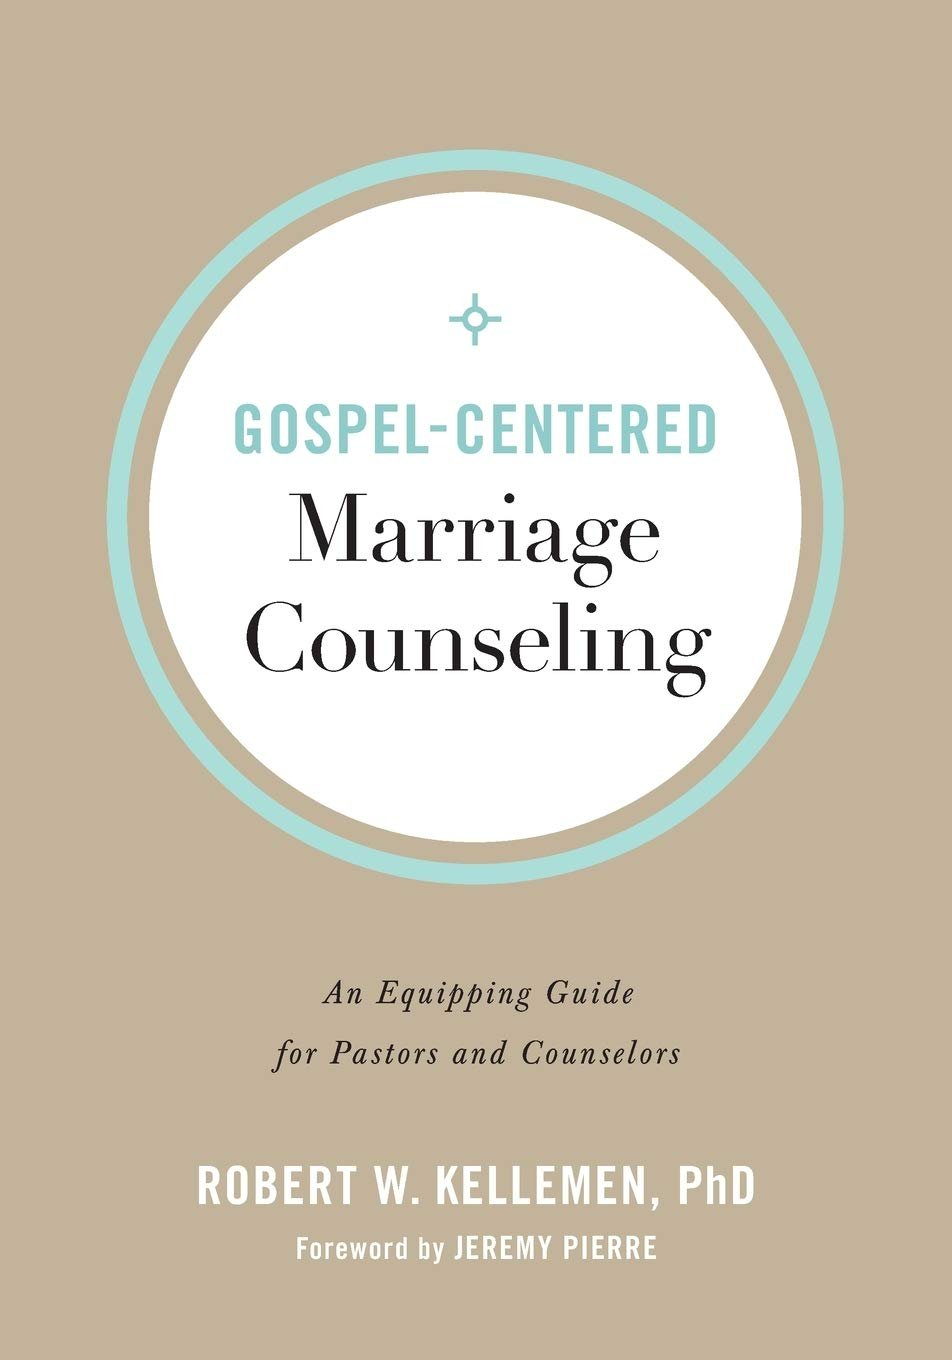 Biblical Counseling: What Is It and Why Is It Important? 2